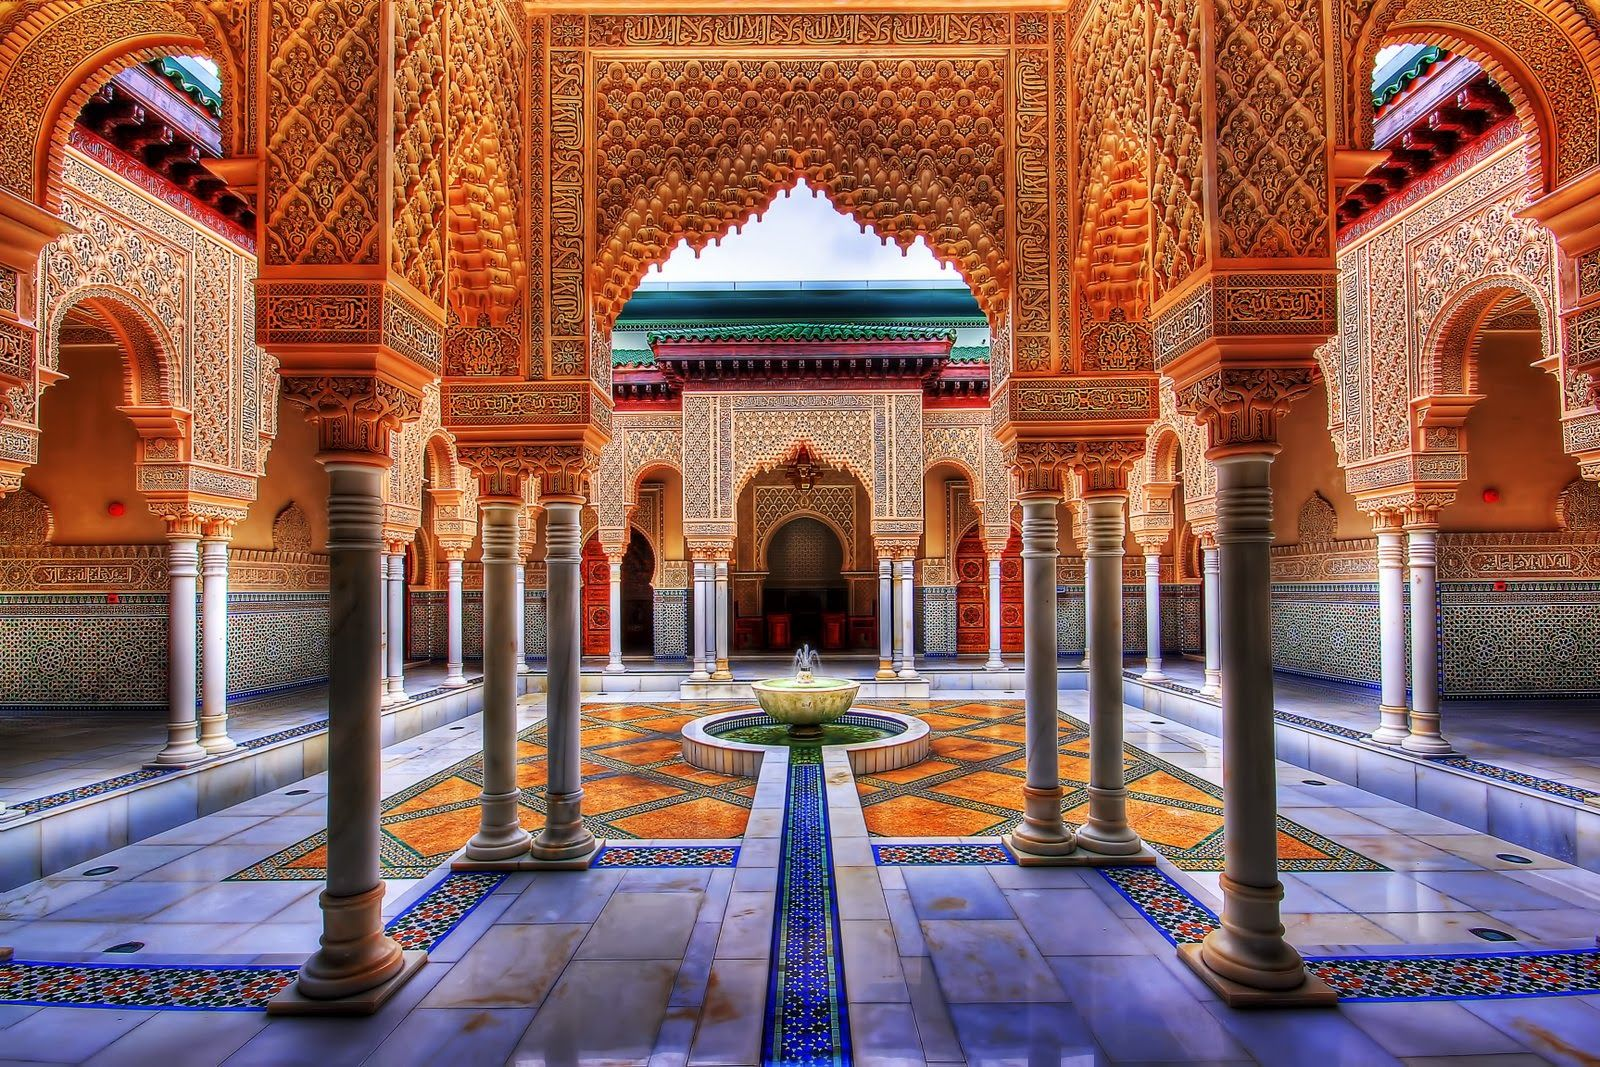 Amusing-ancient-moroccan-architecture-as-well-as-moroccan-architecture-facebook.jpg